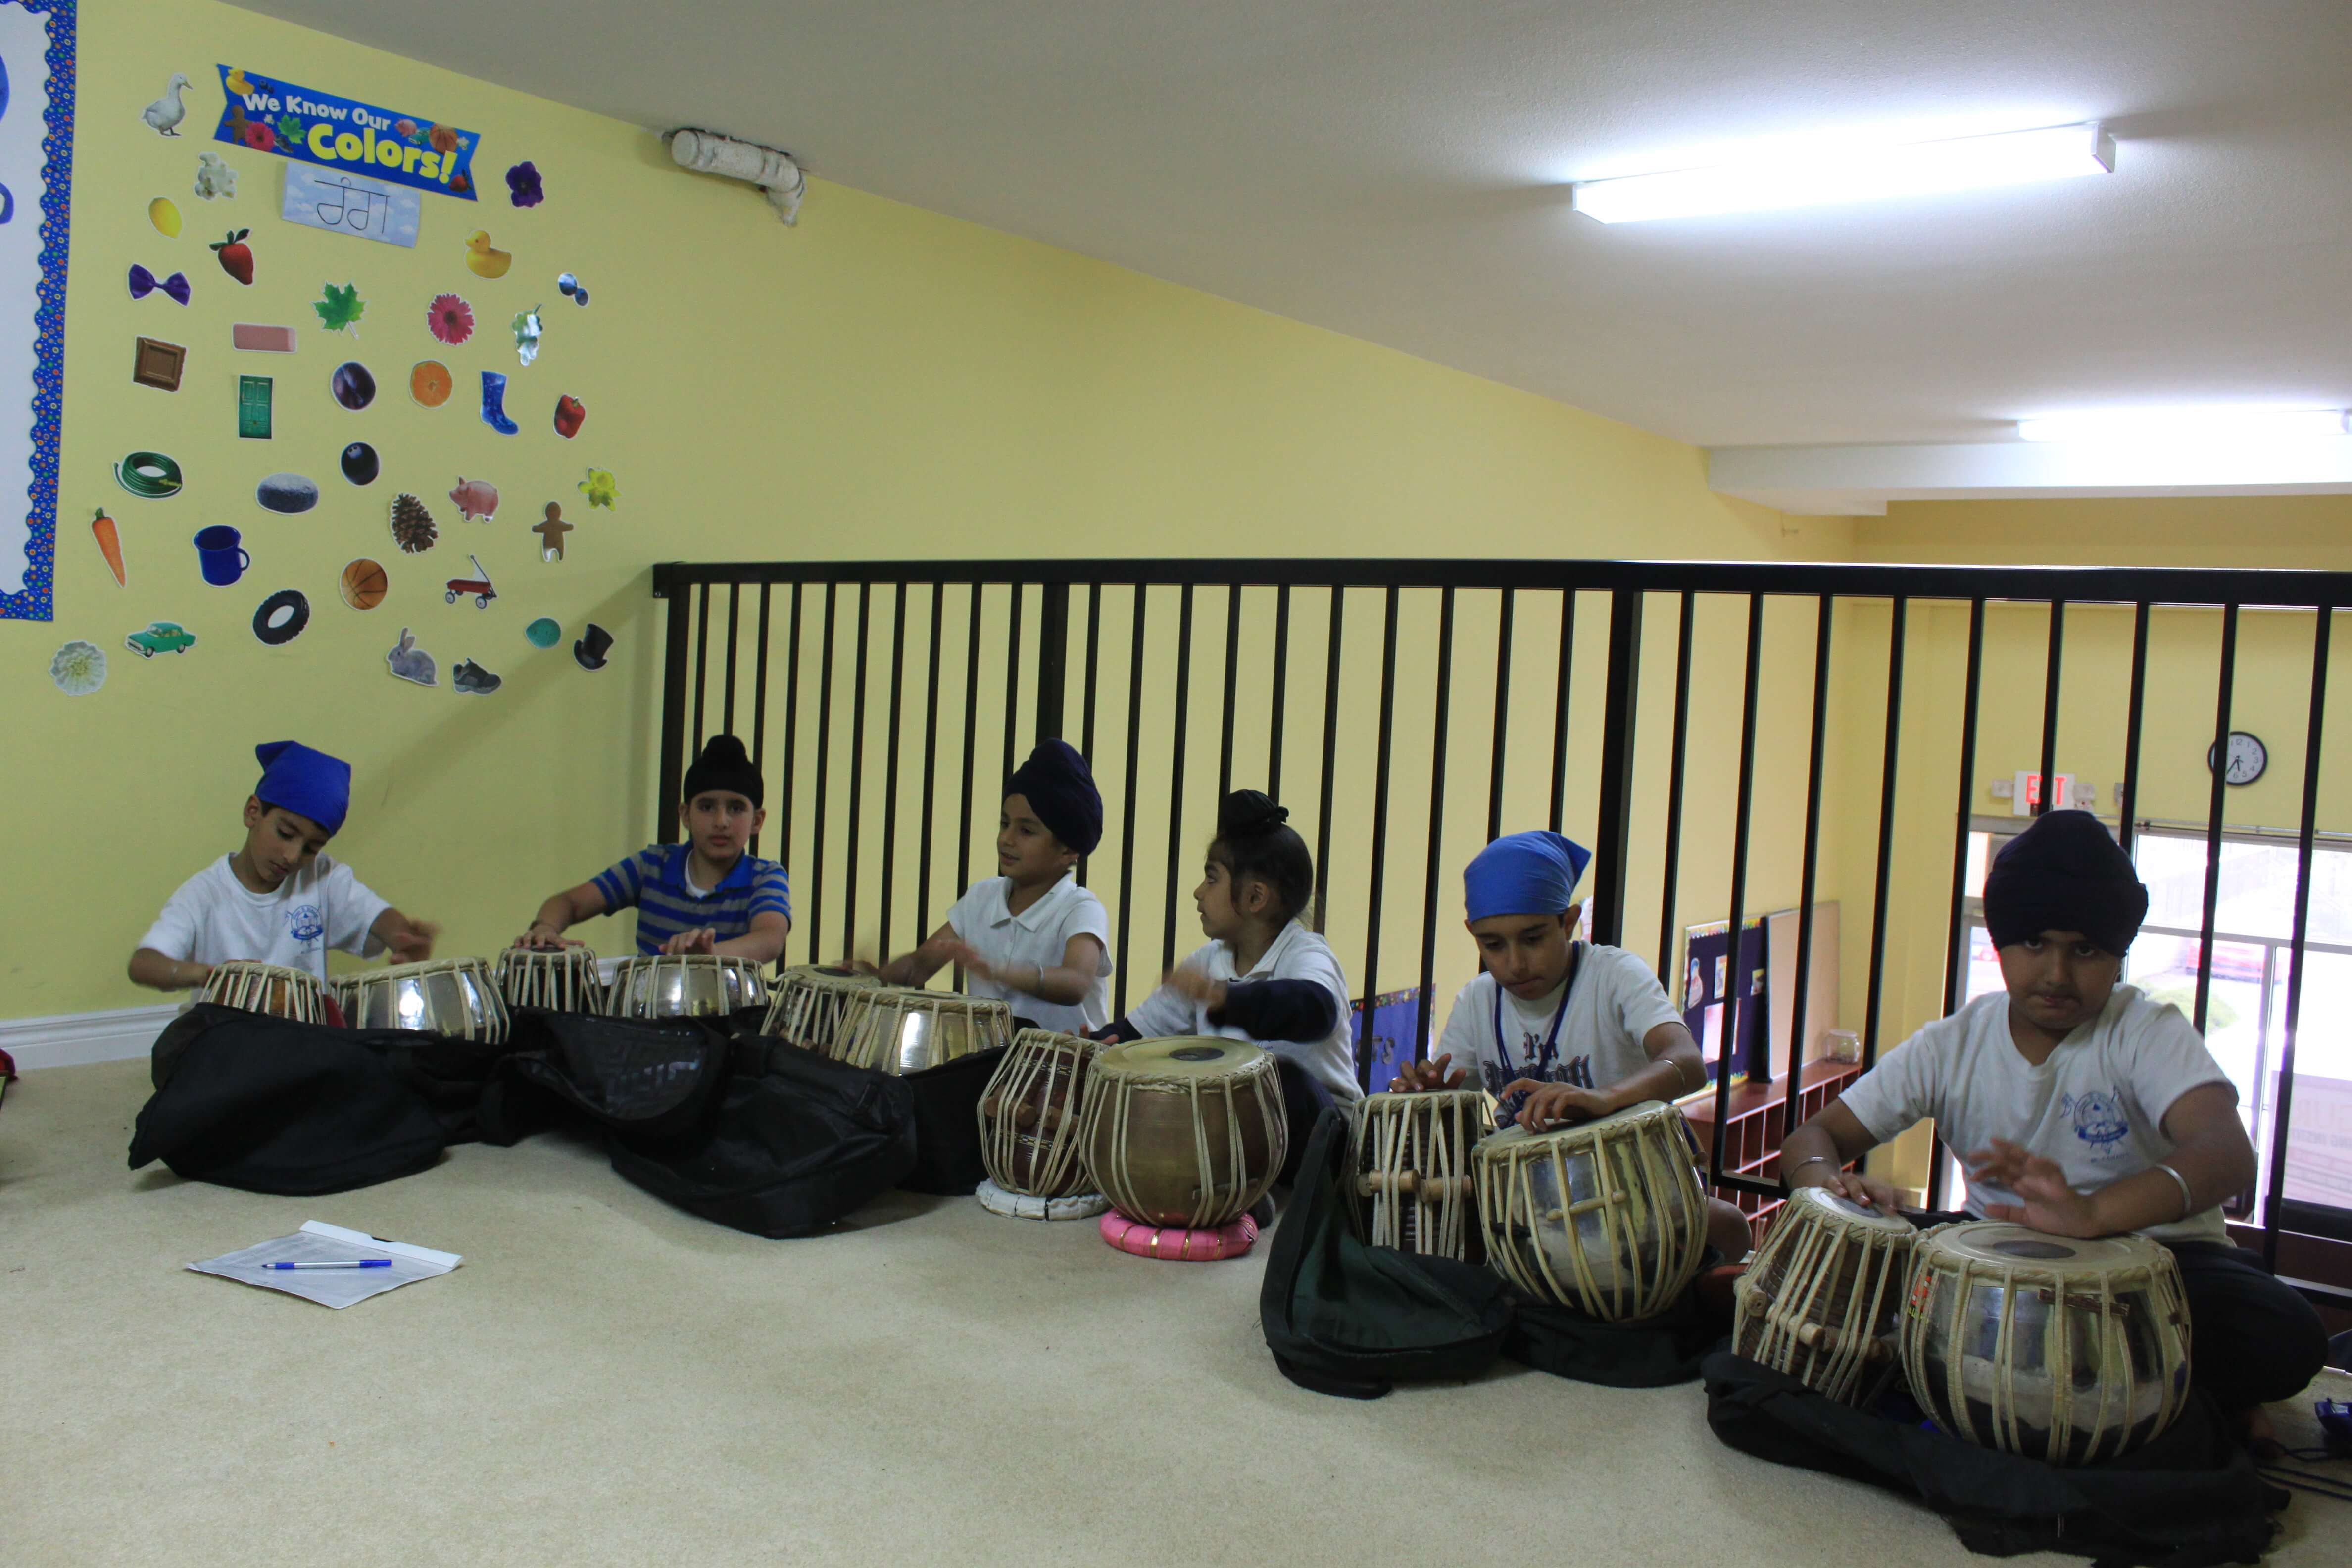 A group of students practicing how to play the tabla (indian hand drums)